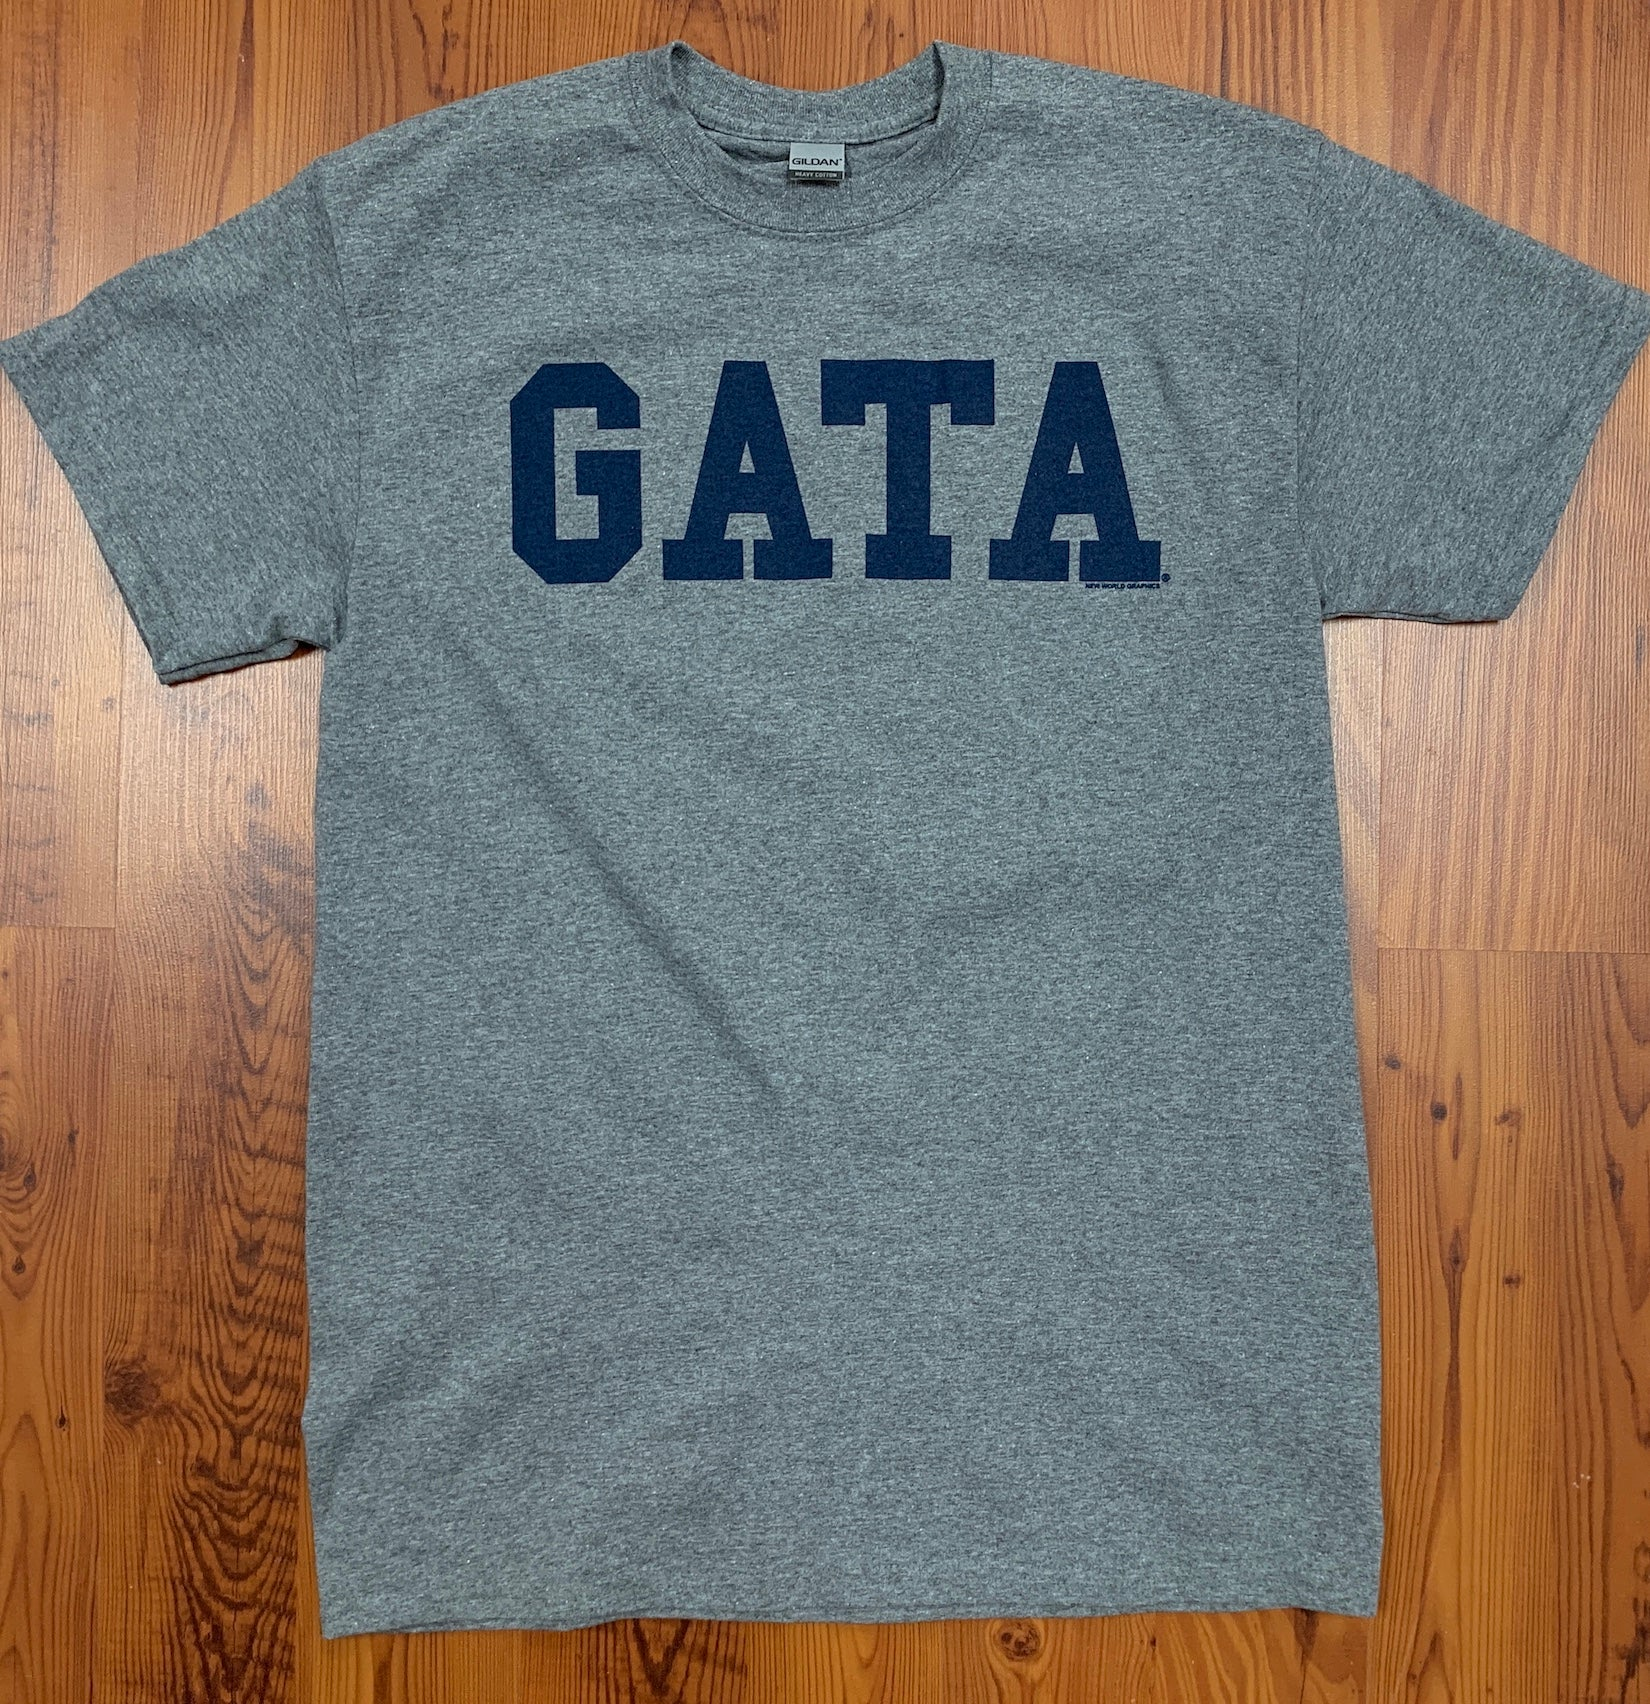 Classic GATA Short Sleeve - Graphite Heather